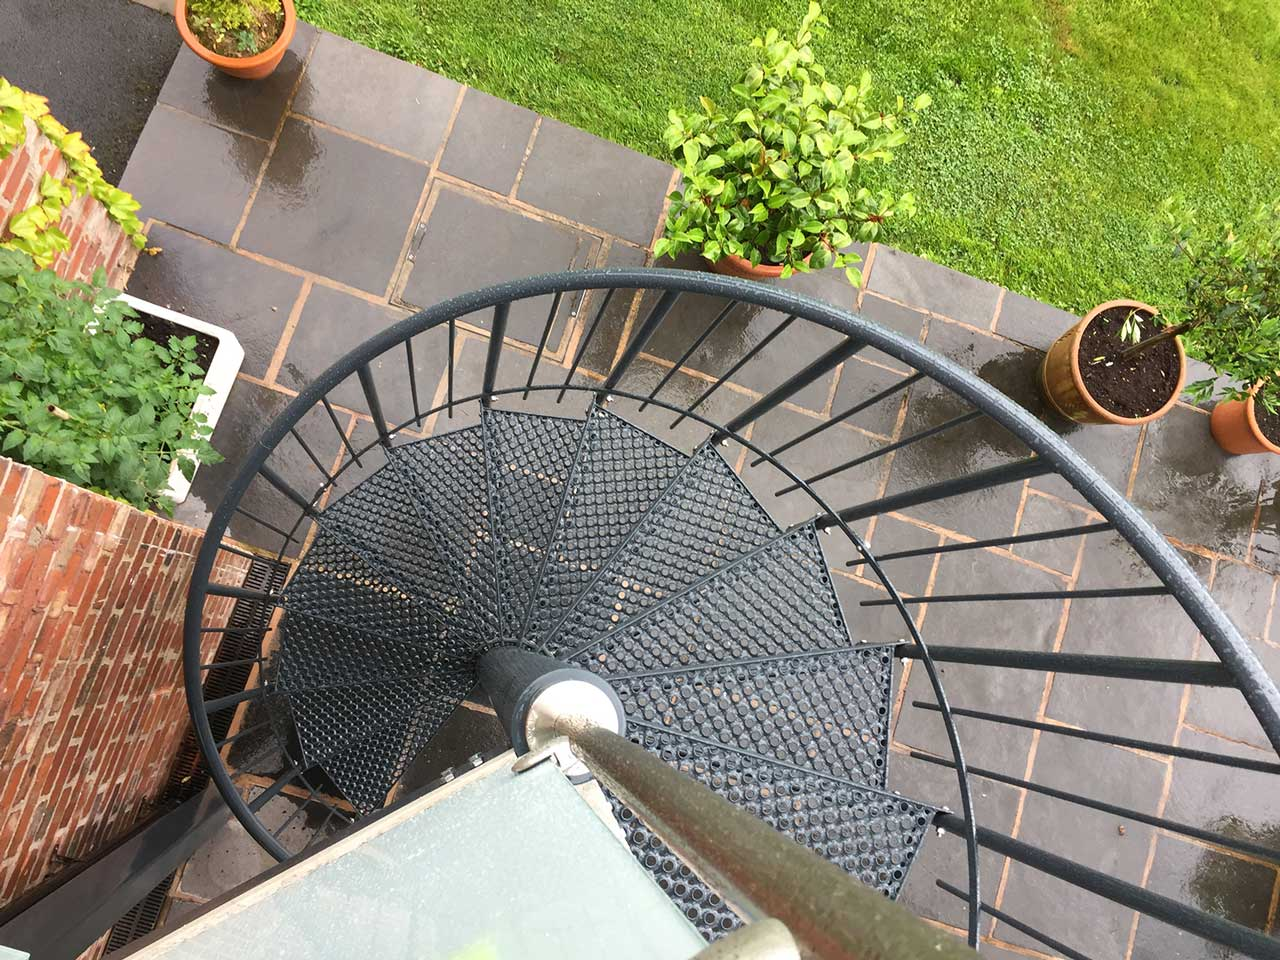 Powder Coated Deluxe Spiral Staircase From Top Of Balcony · External Spiral  Staircase